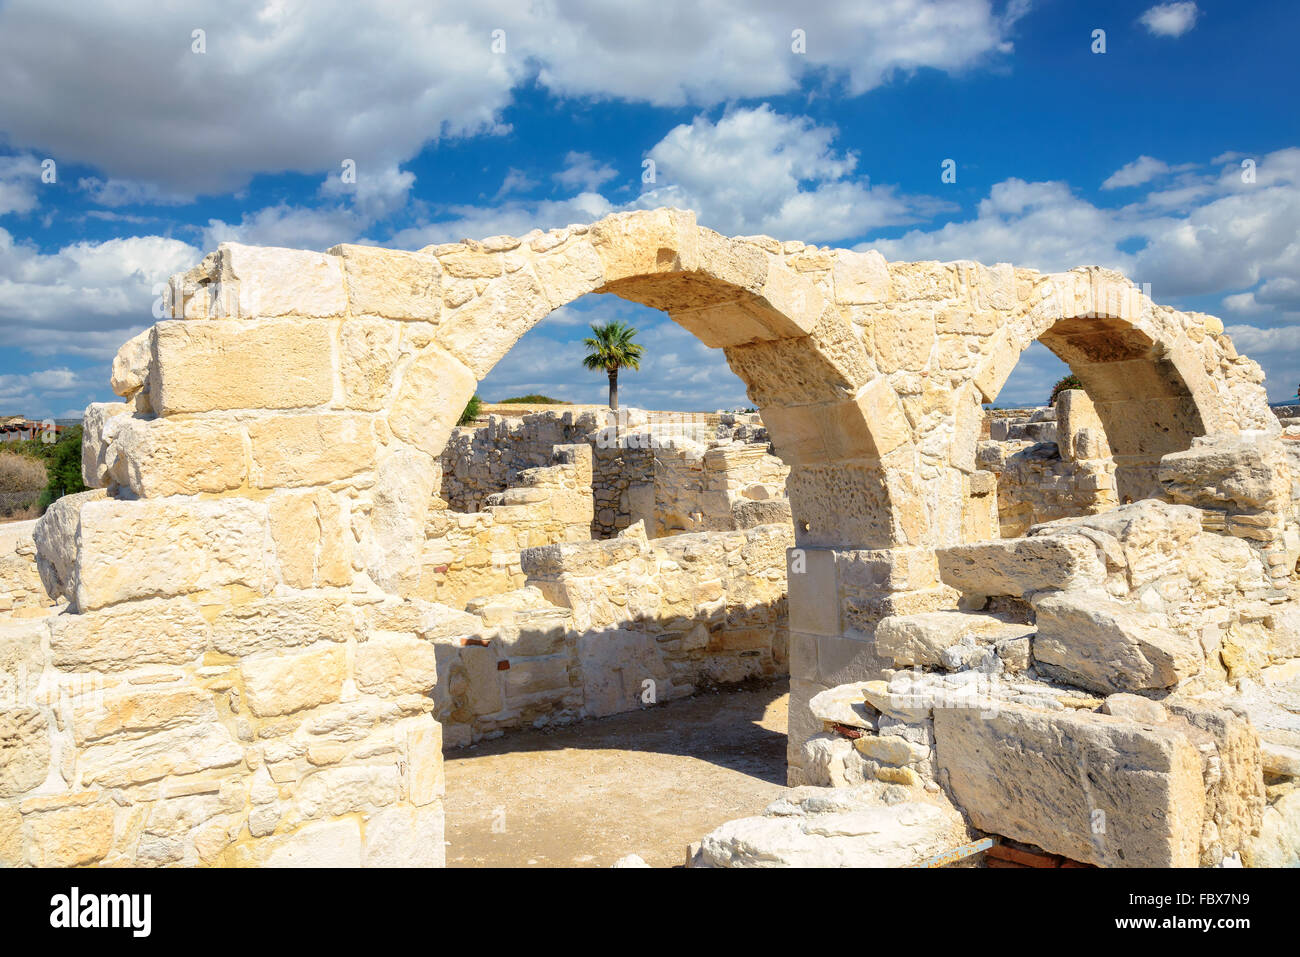 Old greek arches ruin city of Kourion near Limassol, Cyprus - Stock Image